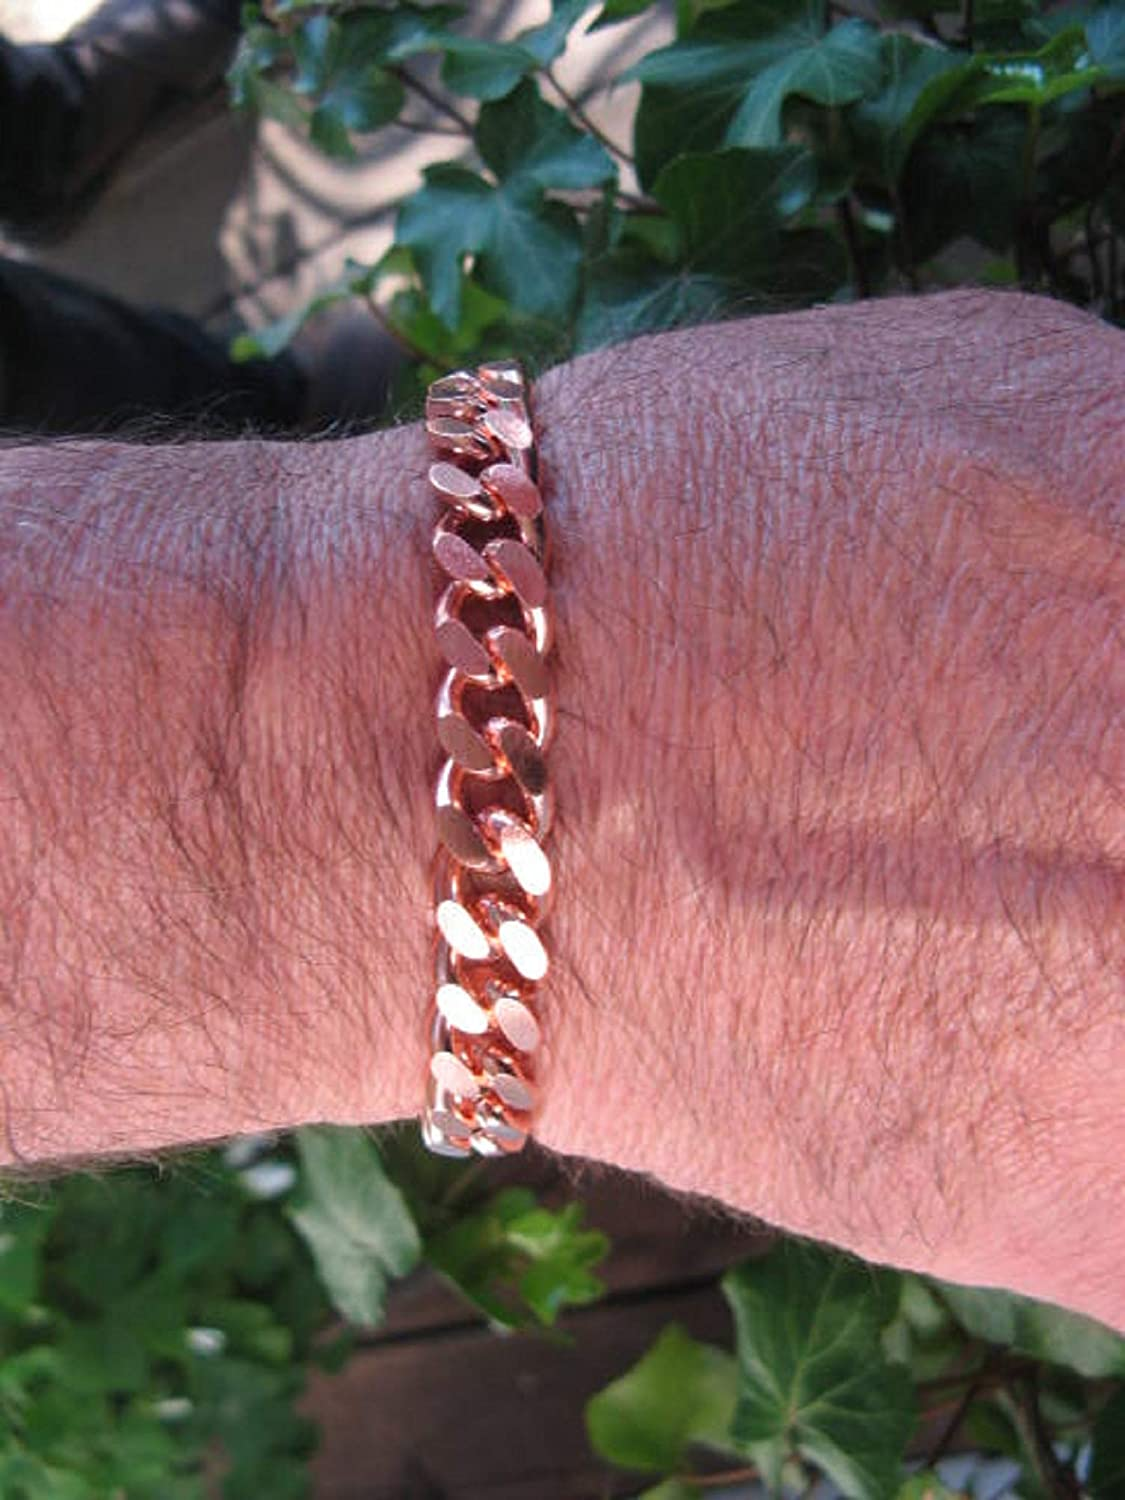 Free Shipping on All U.S Ladies Solid Copper Bracelet #CB629G 316 of an inch wide Available in 6 12 to 8 12 inch lengths Orders.